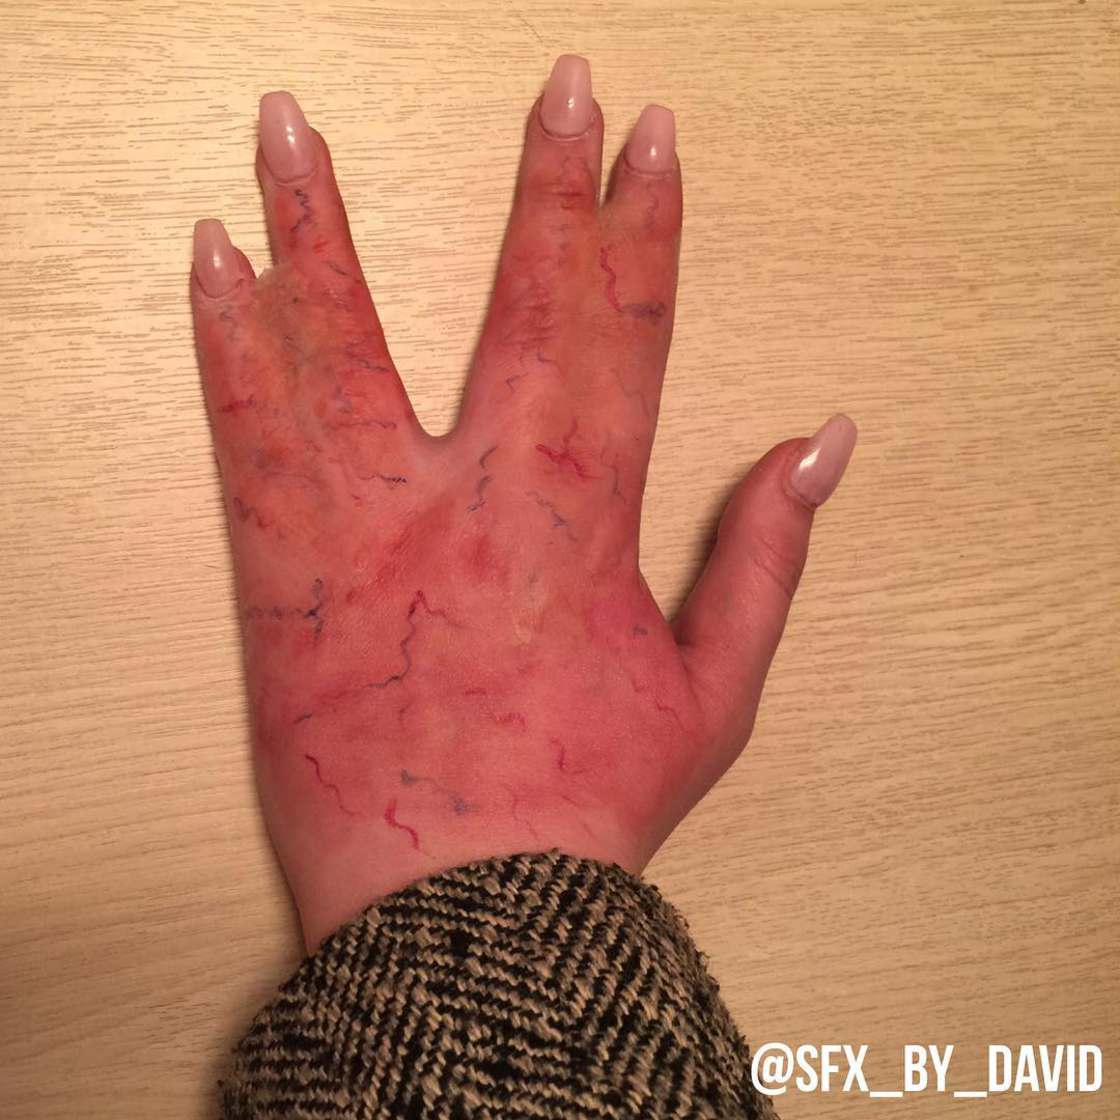 Instagram Horror - The way too realistic makeup from SFX by David